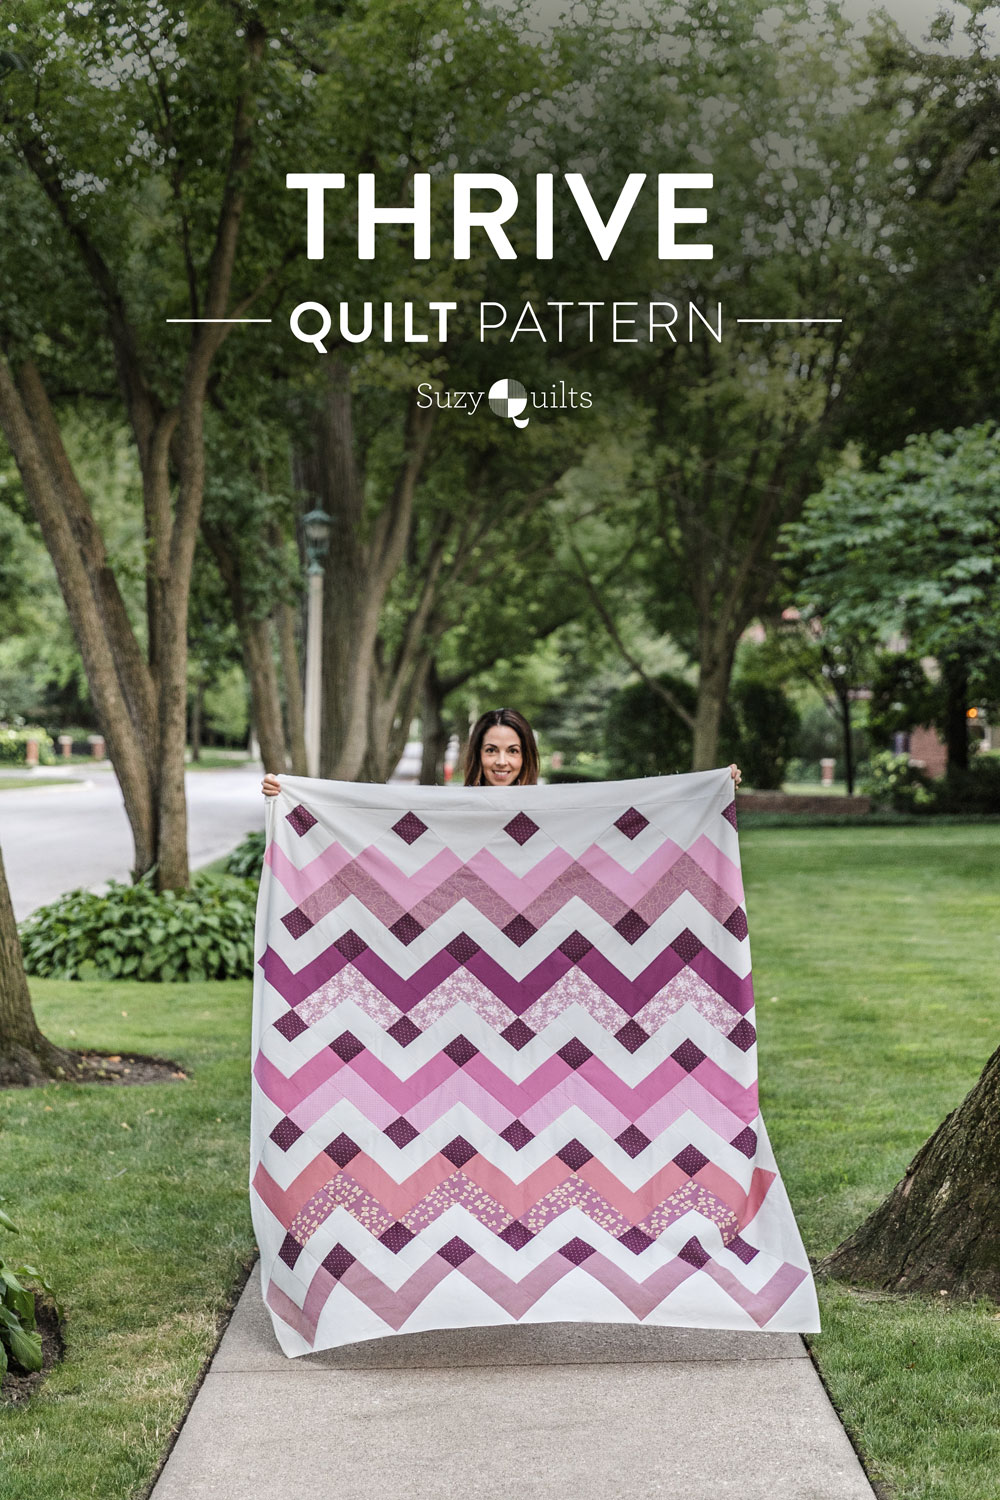 In the final week of the Thrive sew along we sew the finished quilt top. Included is a video tutorial on how to trim and square up your corners! suzyquilts.com #modernquilt #quiltpattern